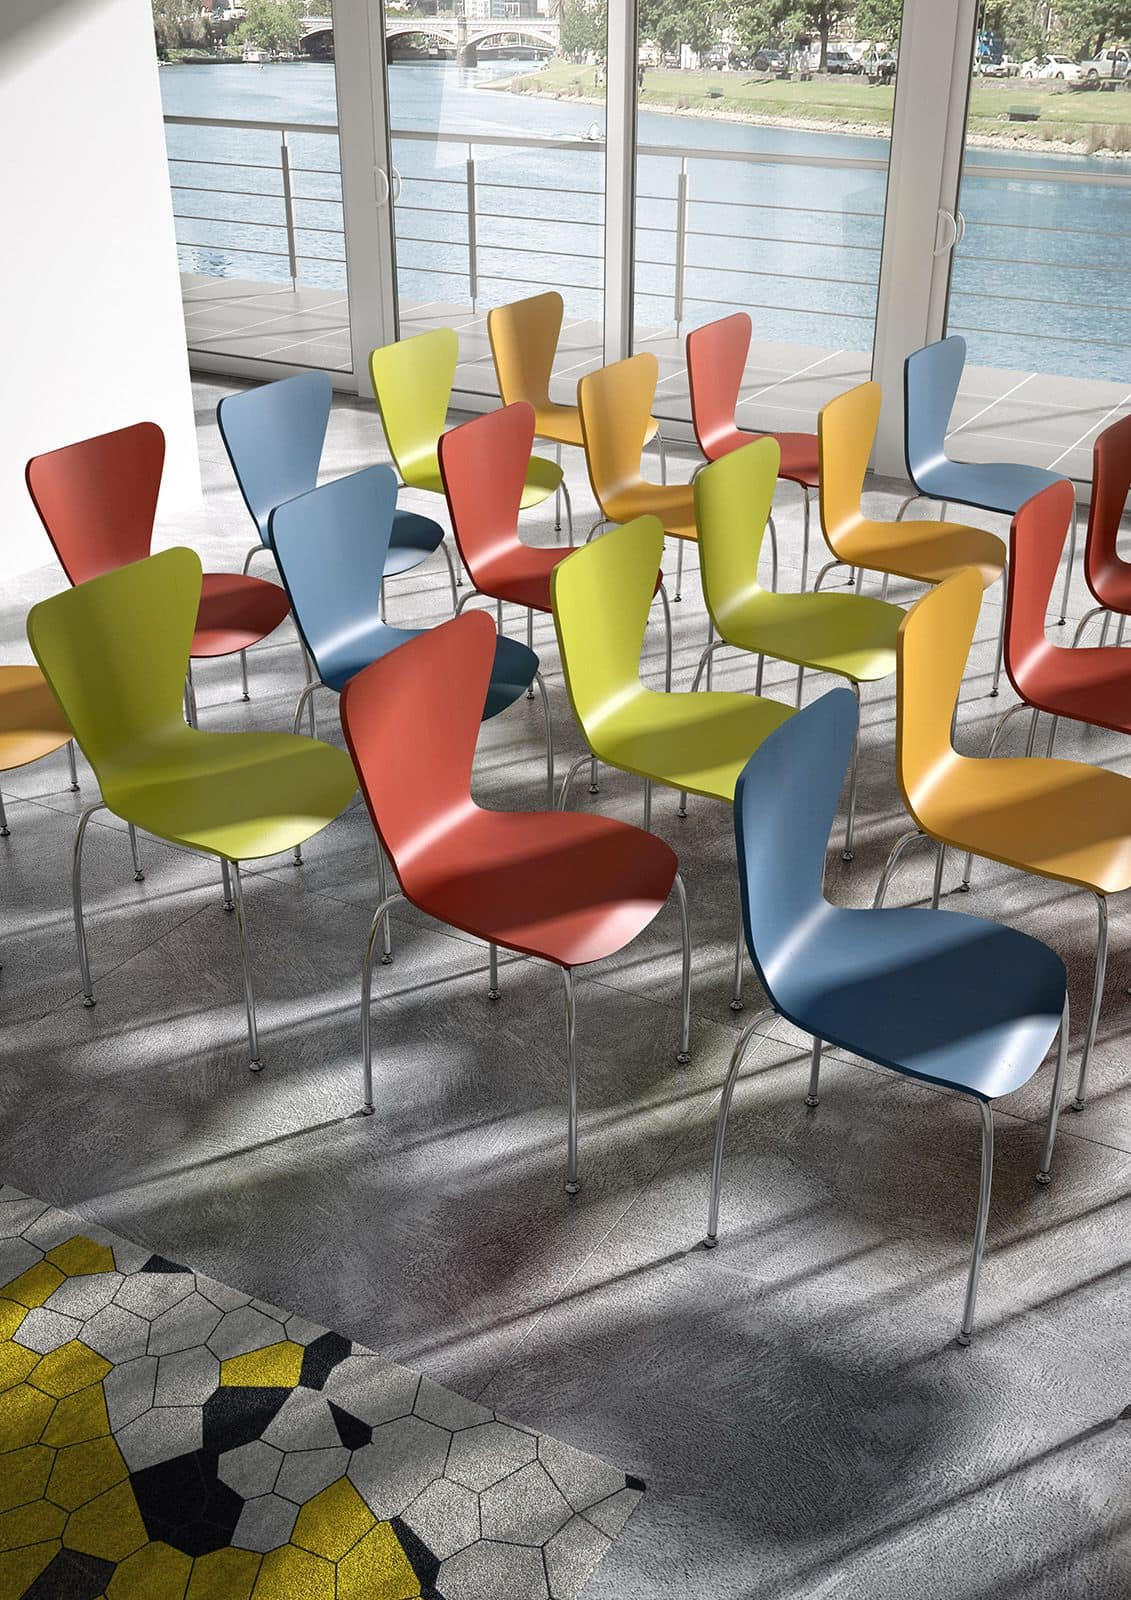 Gardena 0653LE, Chair in metal and wood, for office and waiting rooms